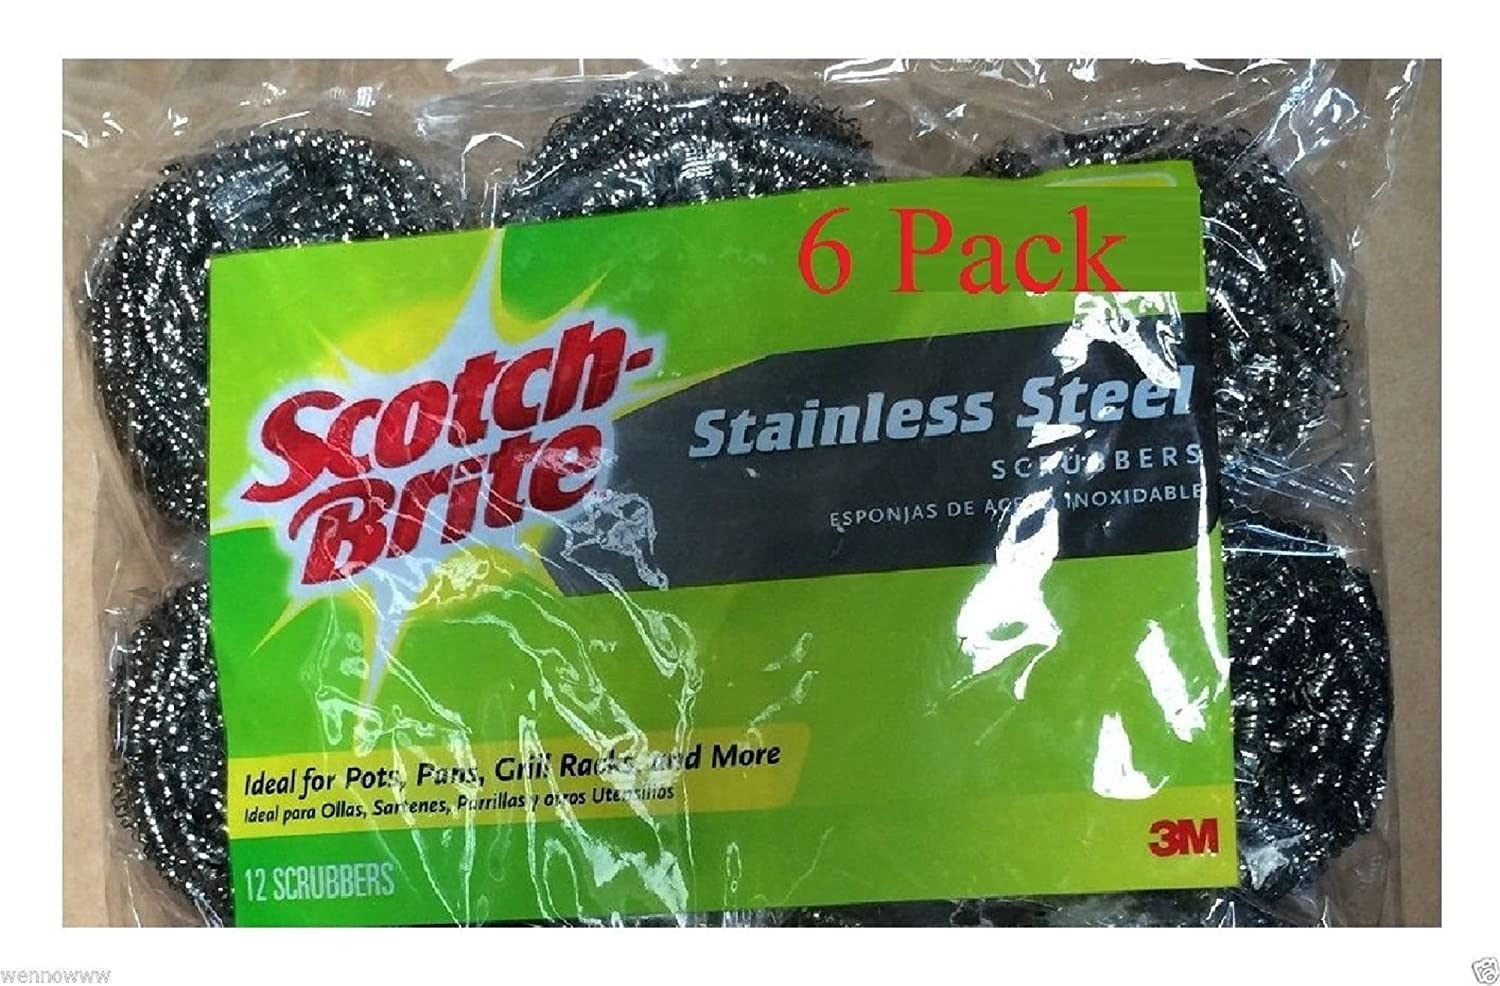 Amazon.com: Scotch-btite 3m 6-pack Stainless Steel Scrubbers: Kitchen & Dining